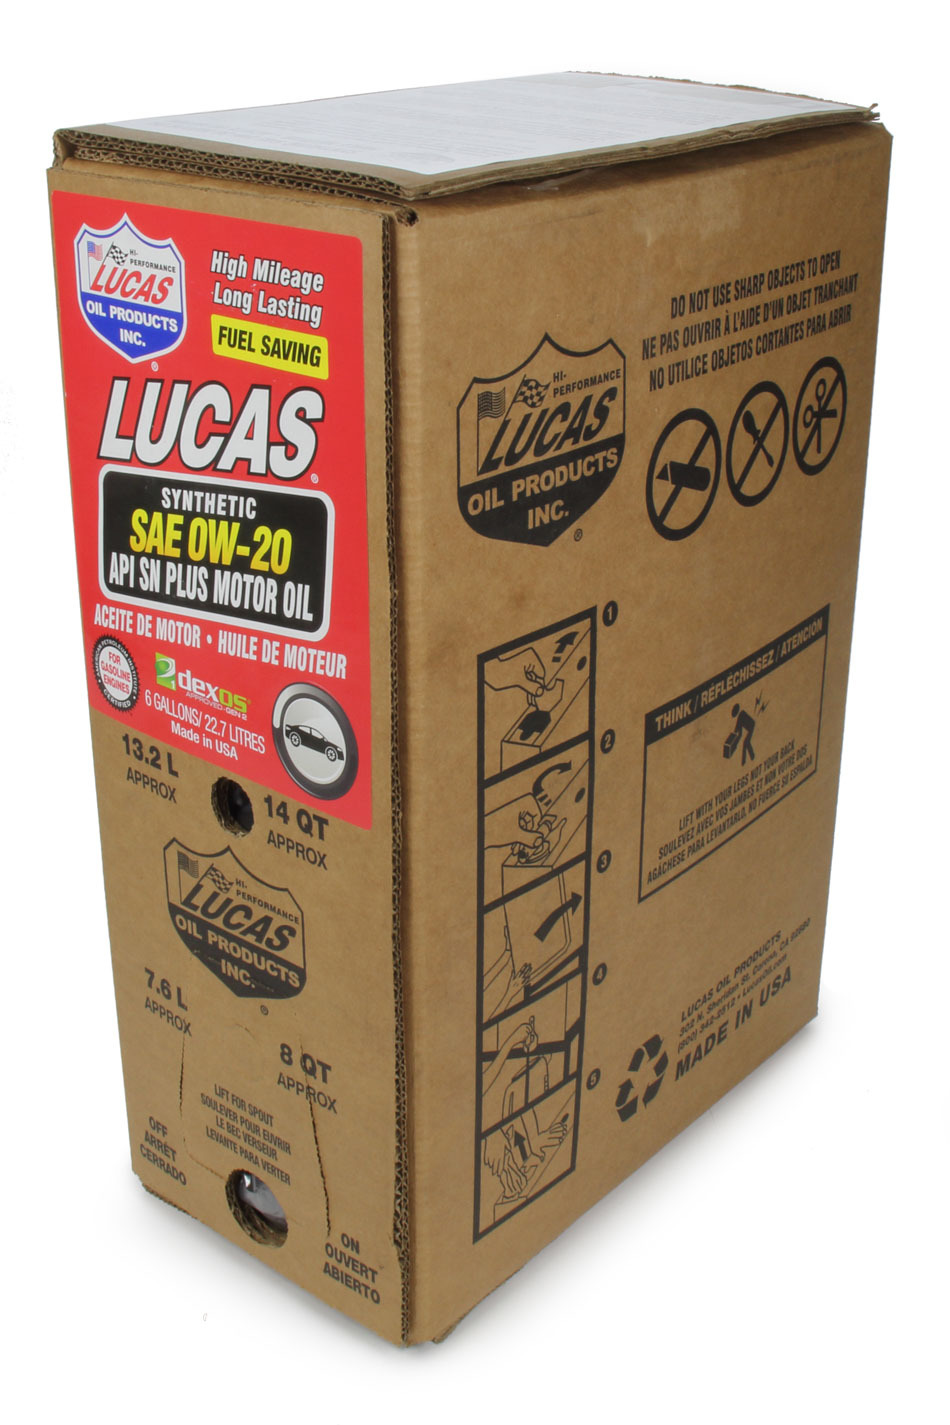 Synthetic SAE 0W20 Oil 6 Gallon Bag In Box